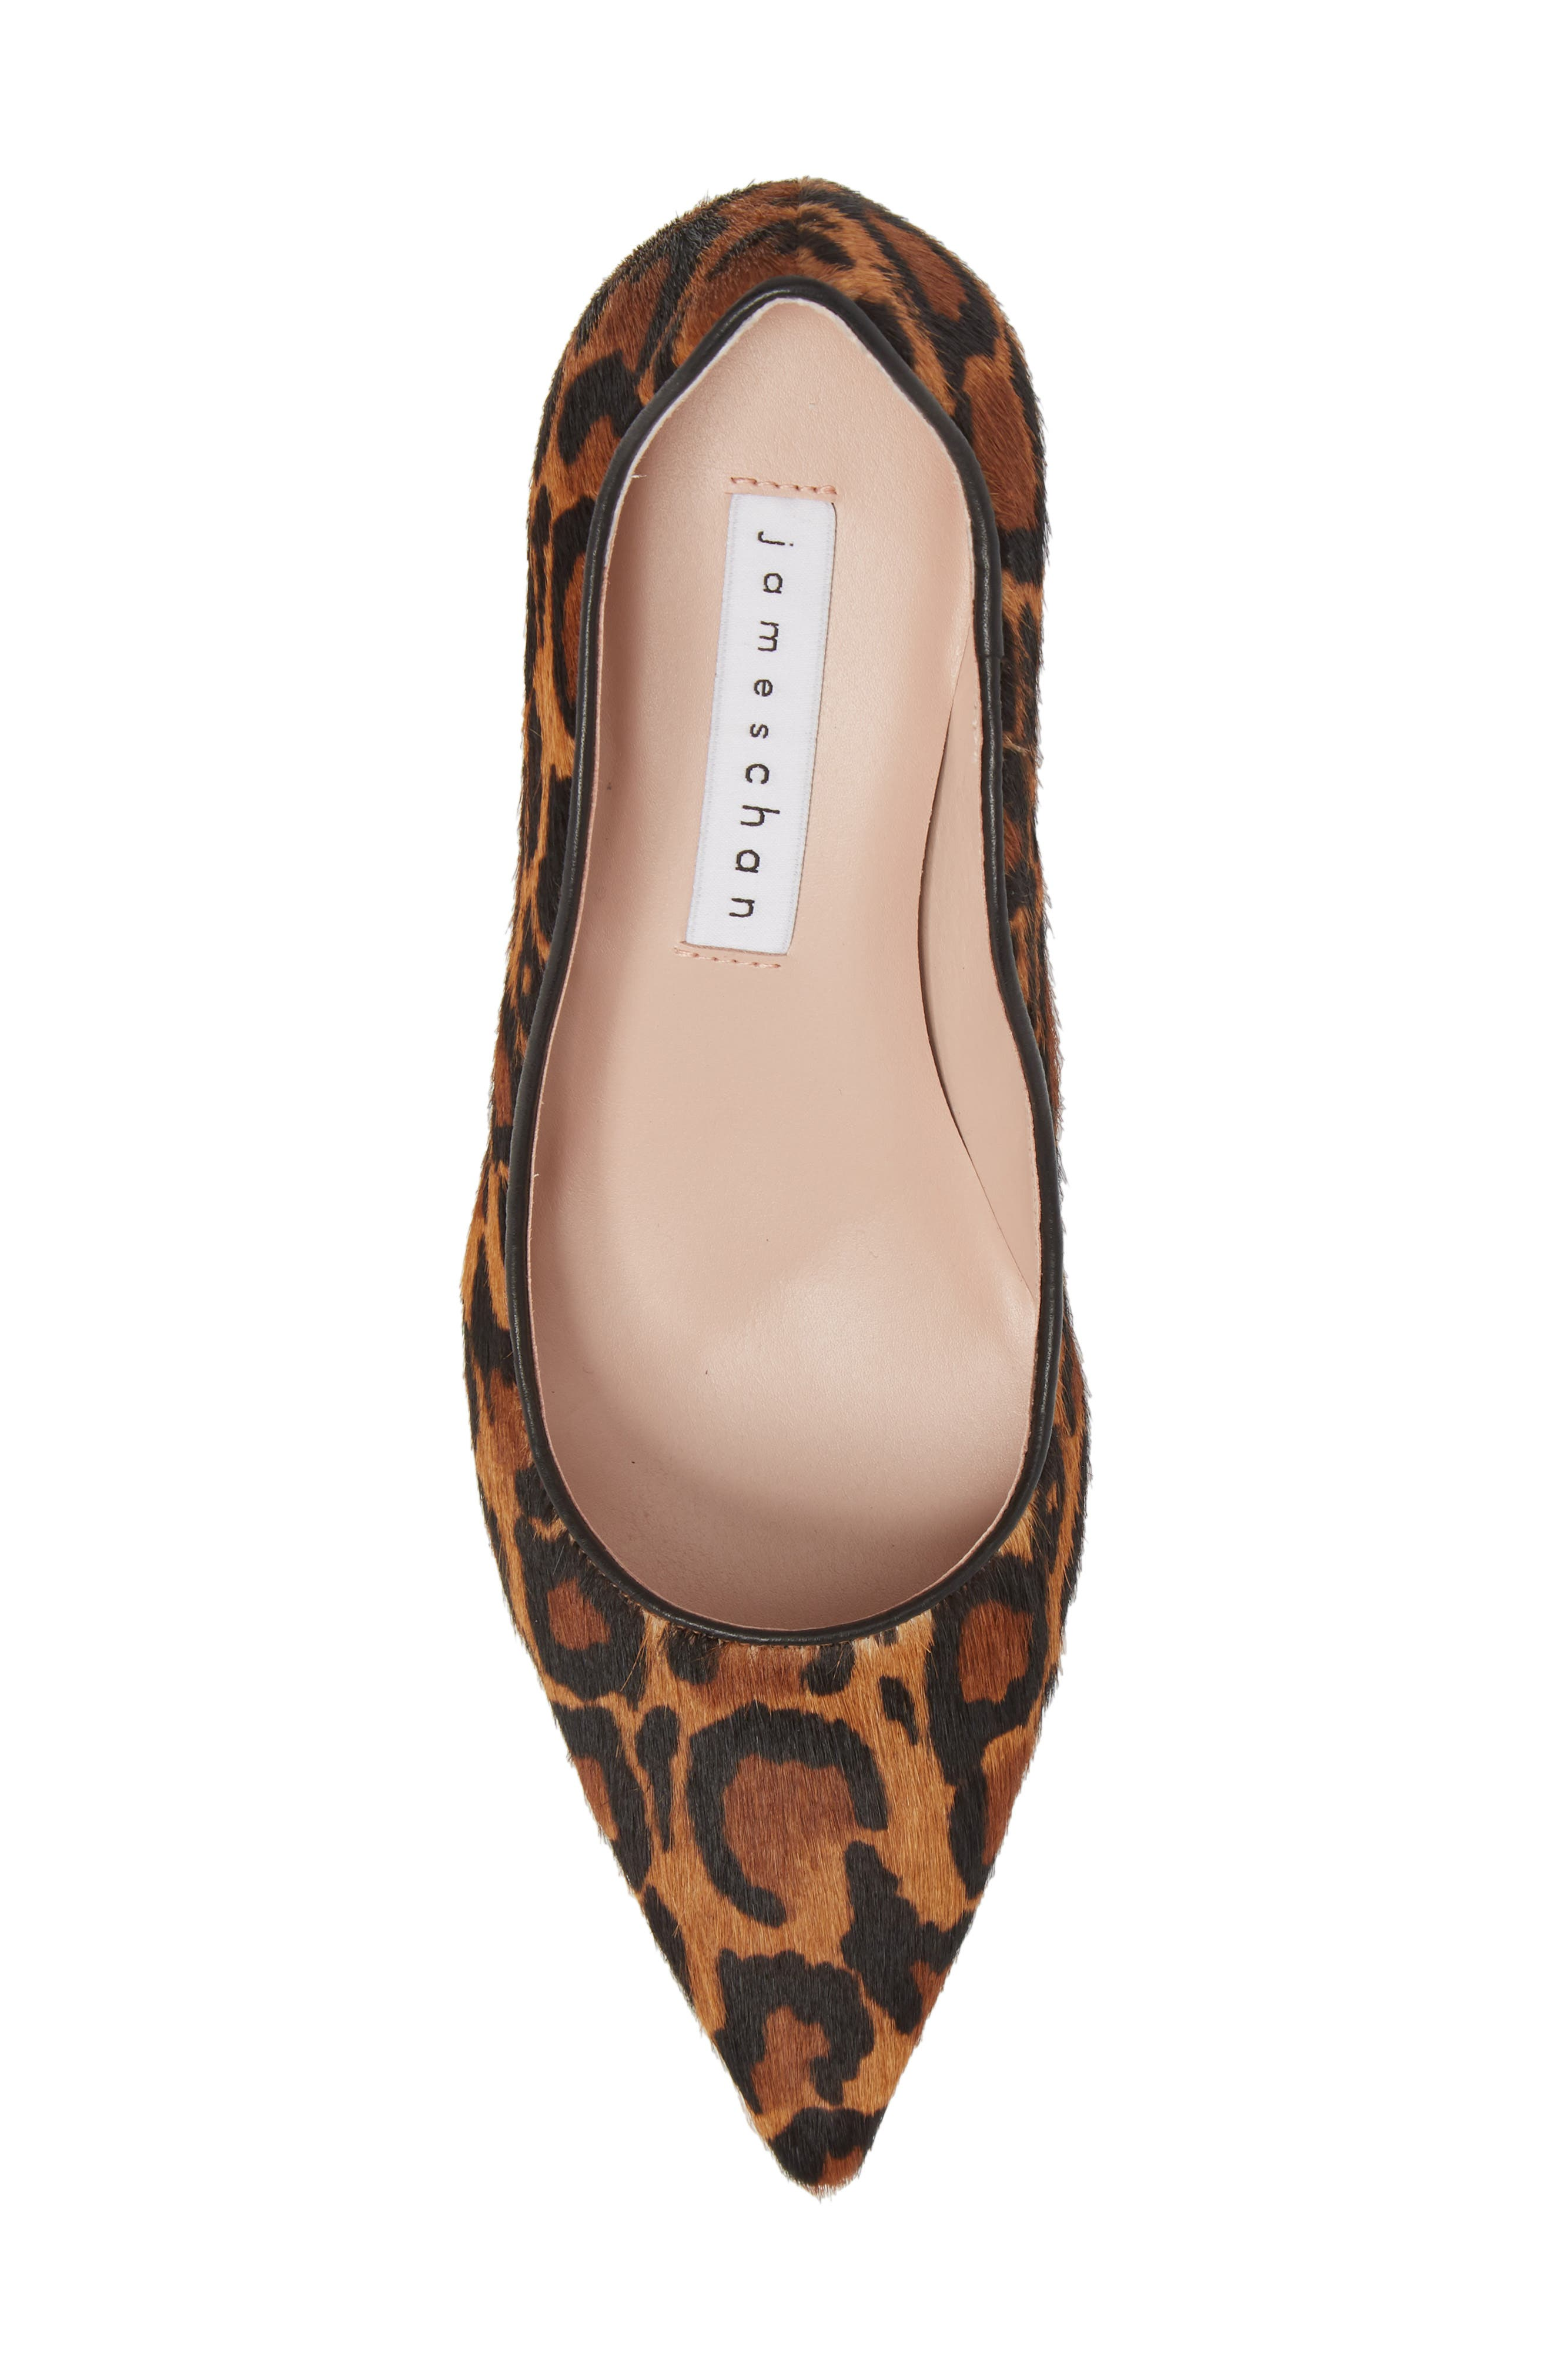 Anika 70 Pump,                             Alternate thumbnail 5, color,                             CAMEL MULTI HAIR CALF